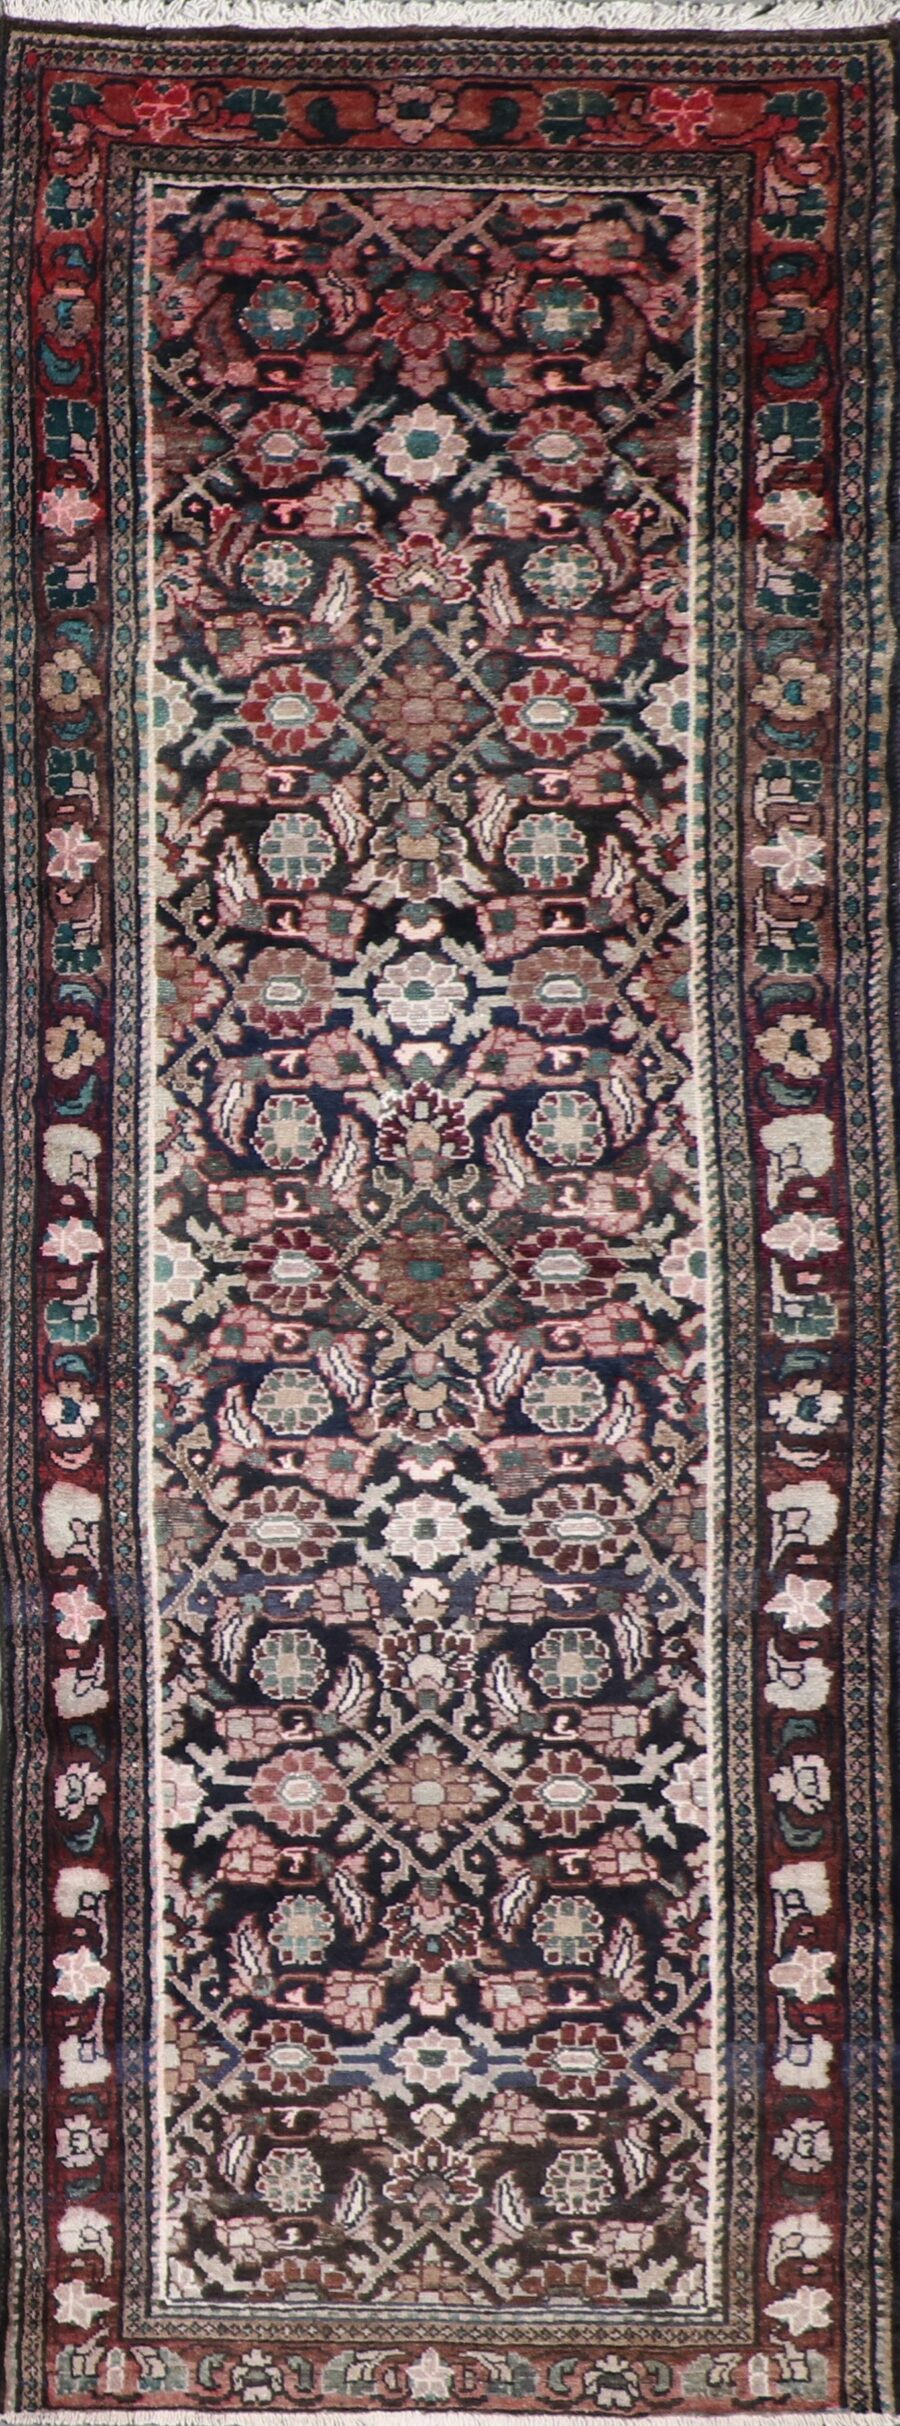 """3'8""""x10'3"""" Traditional Burgundy Tribal Wool Hand-Knotted Rug - Direct Rug Import   Rugs in Chicago, Indiana,South Bend,Granger"""